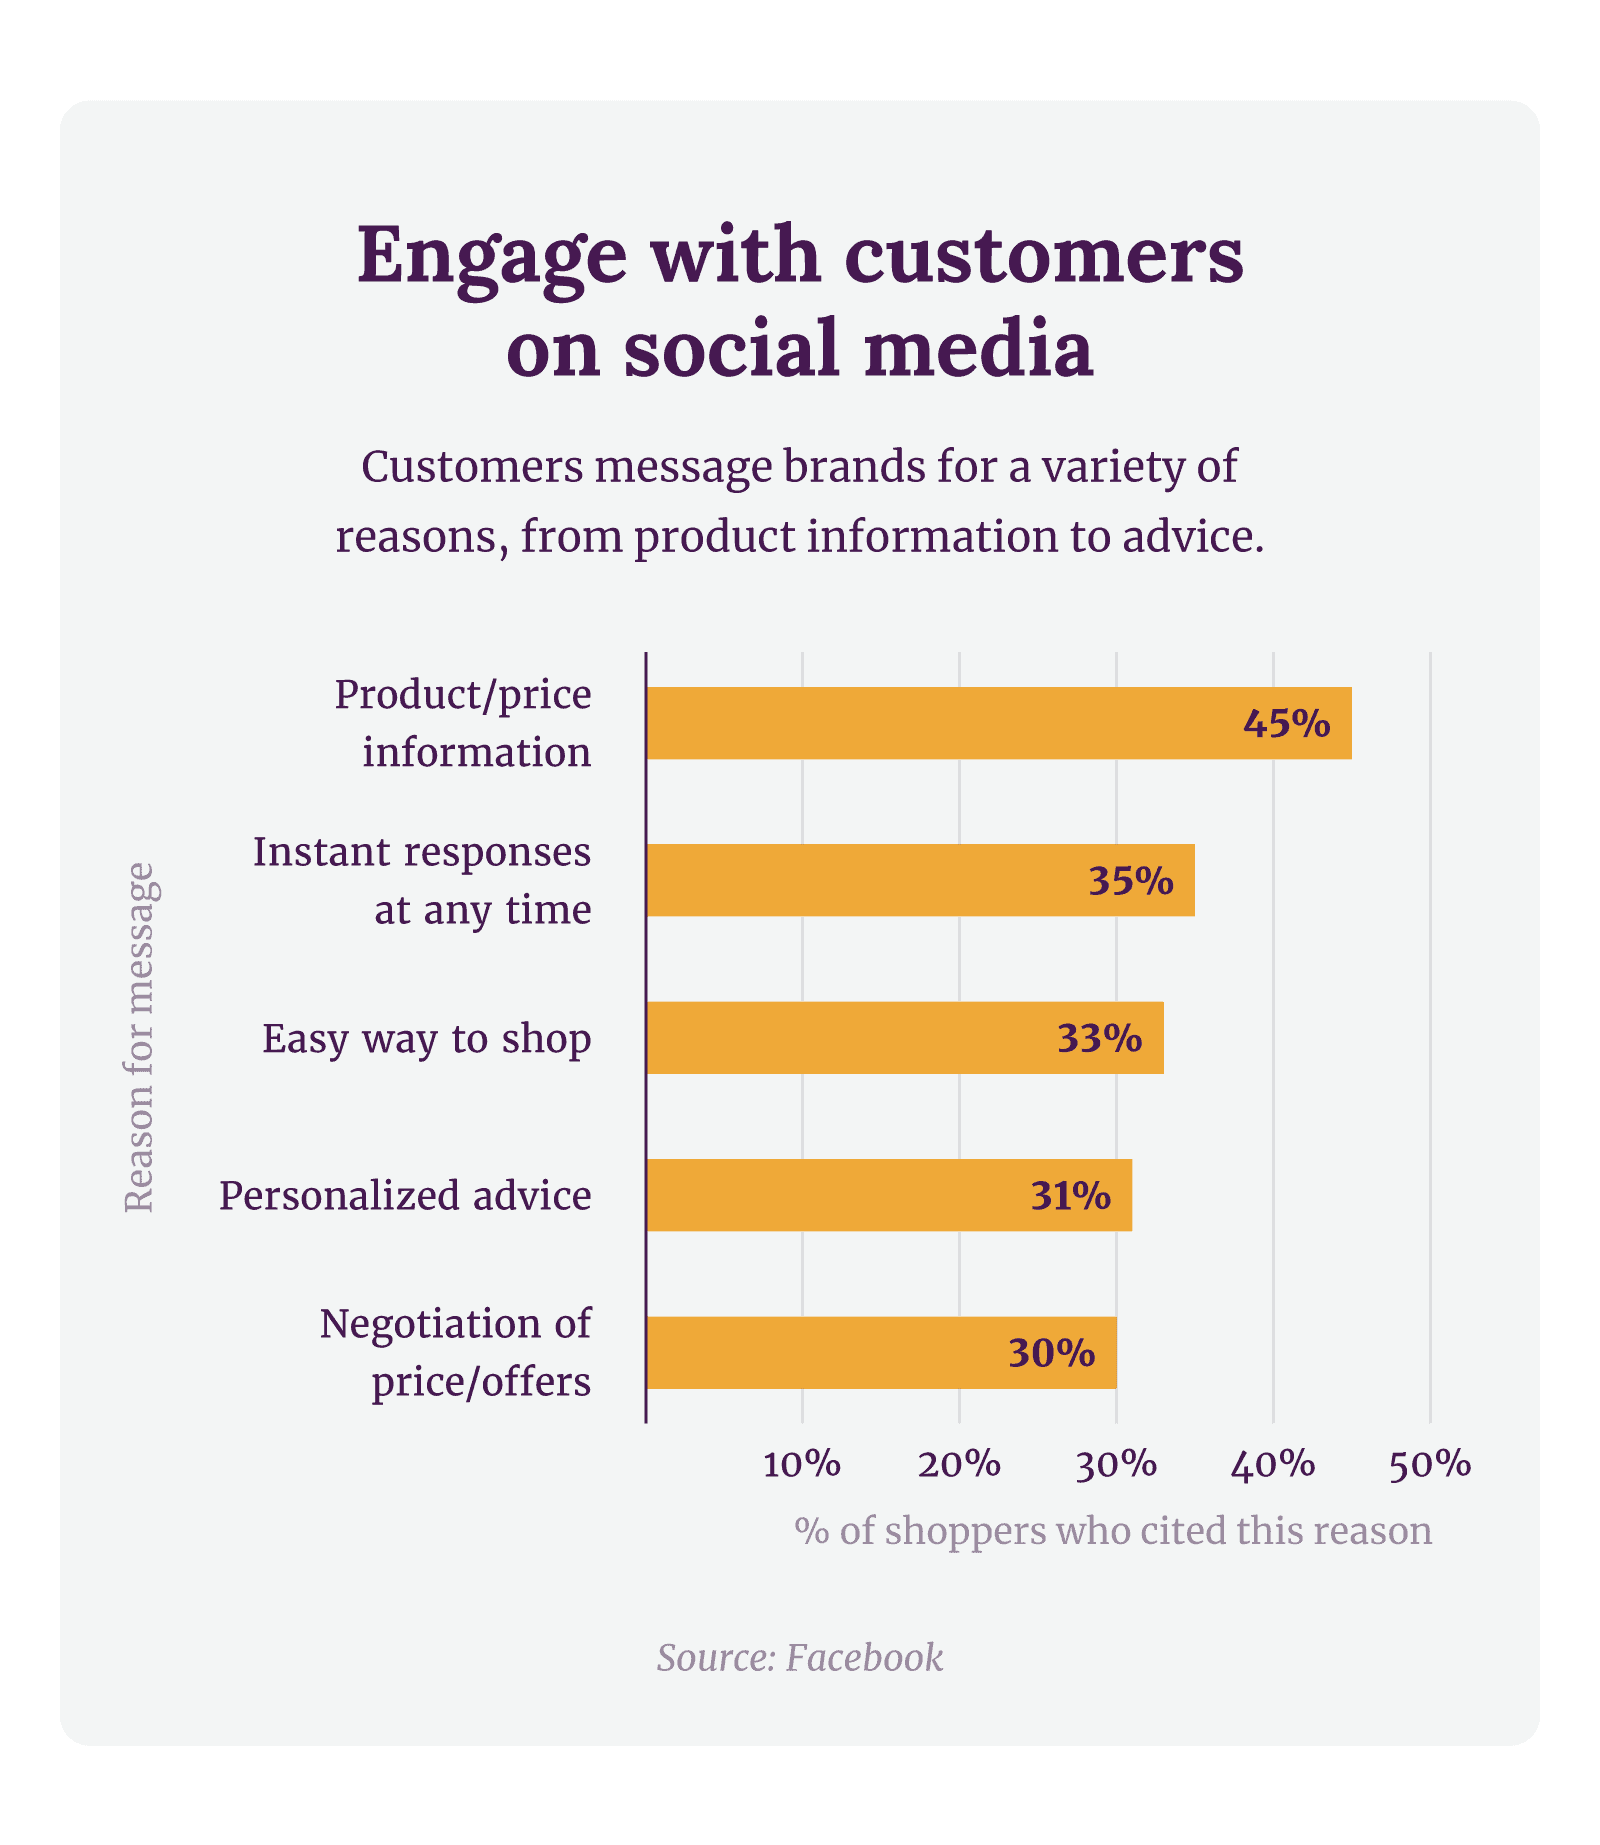 Engage with customers on social media. Customers message brands for a variety of reasons, from product information to advice.